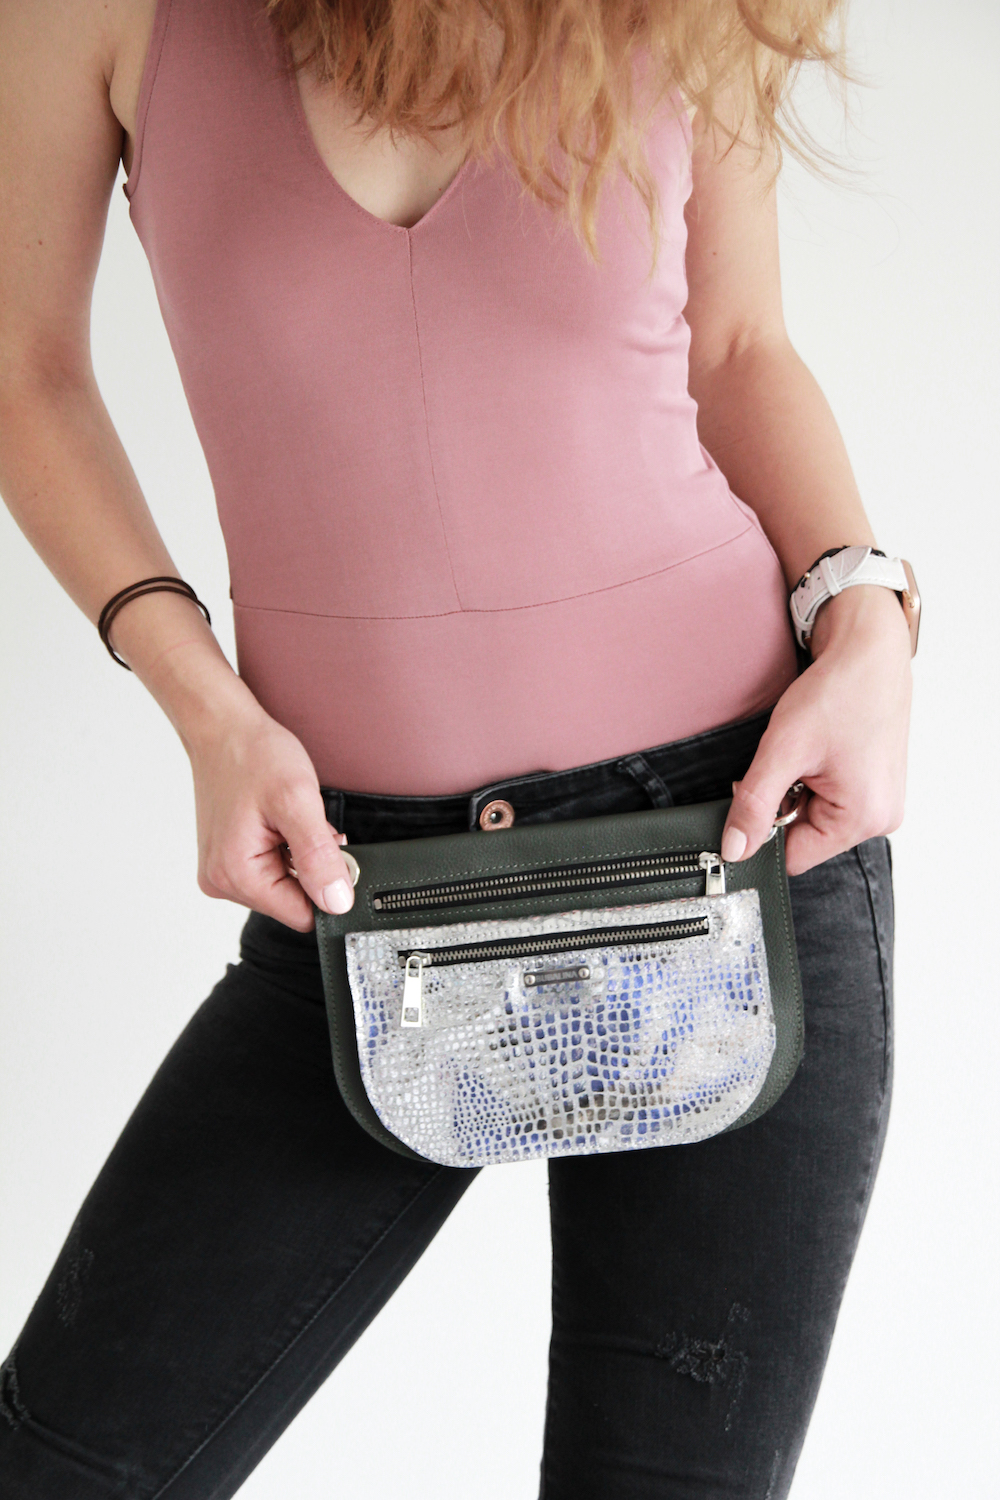 beltbag3-70eur - Copy.jpg